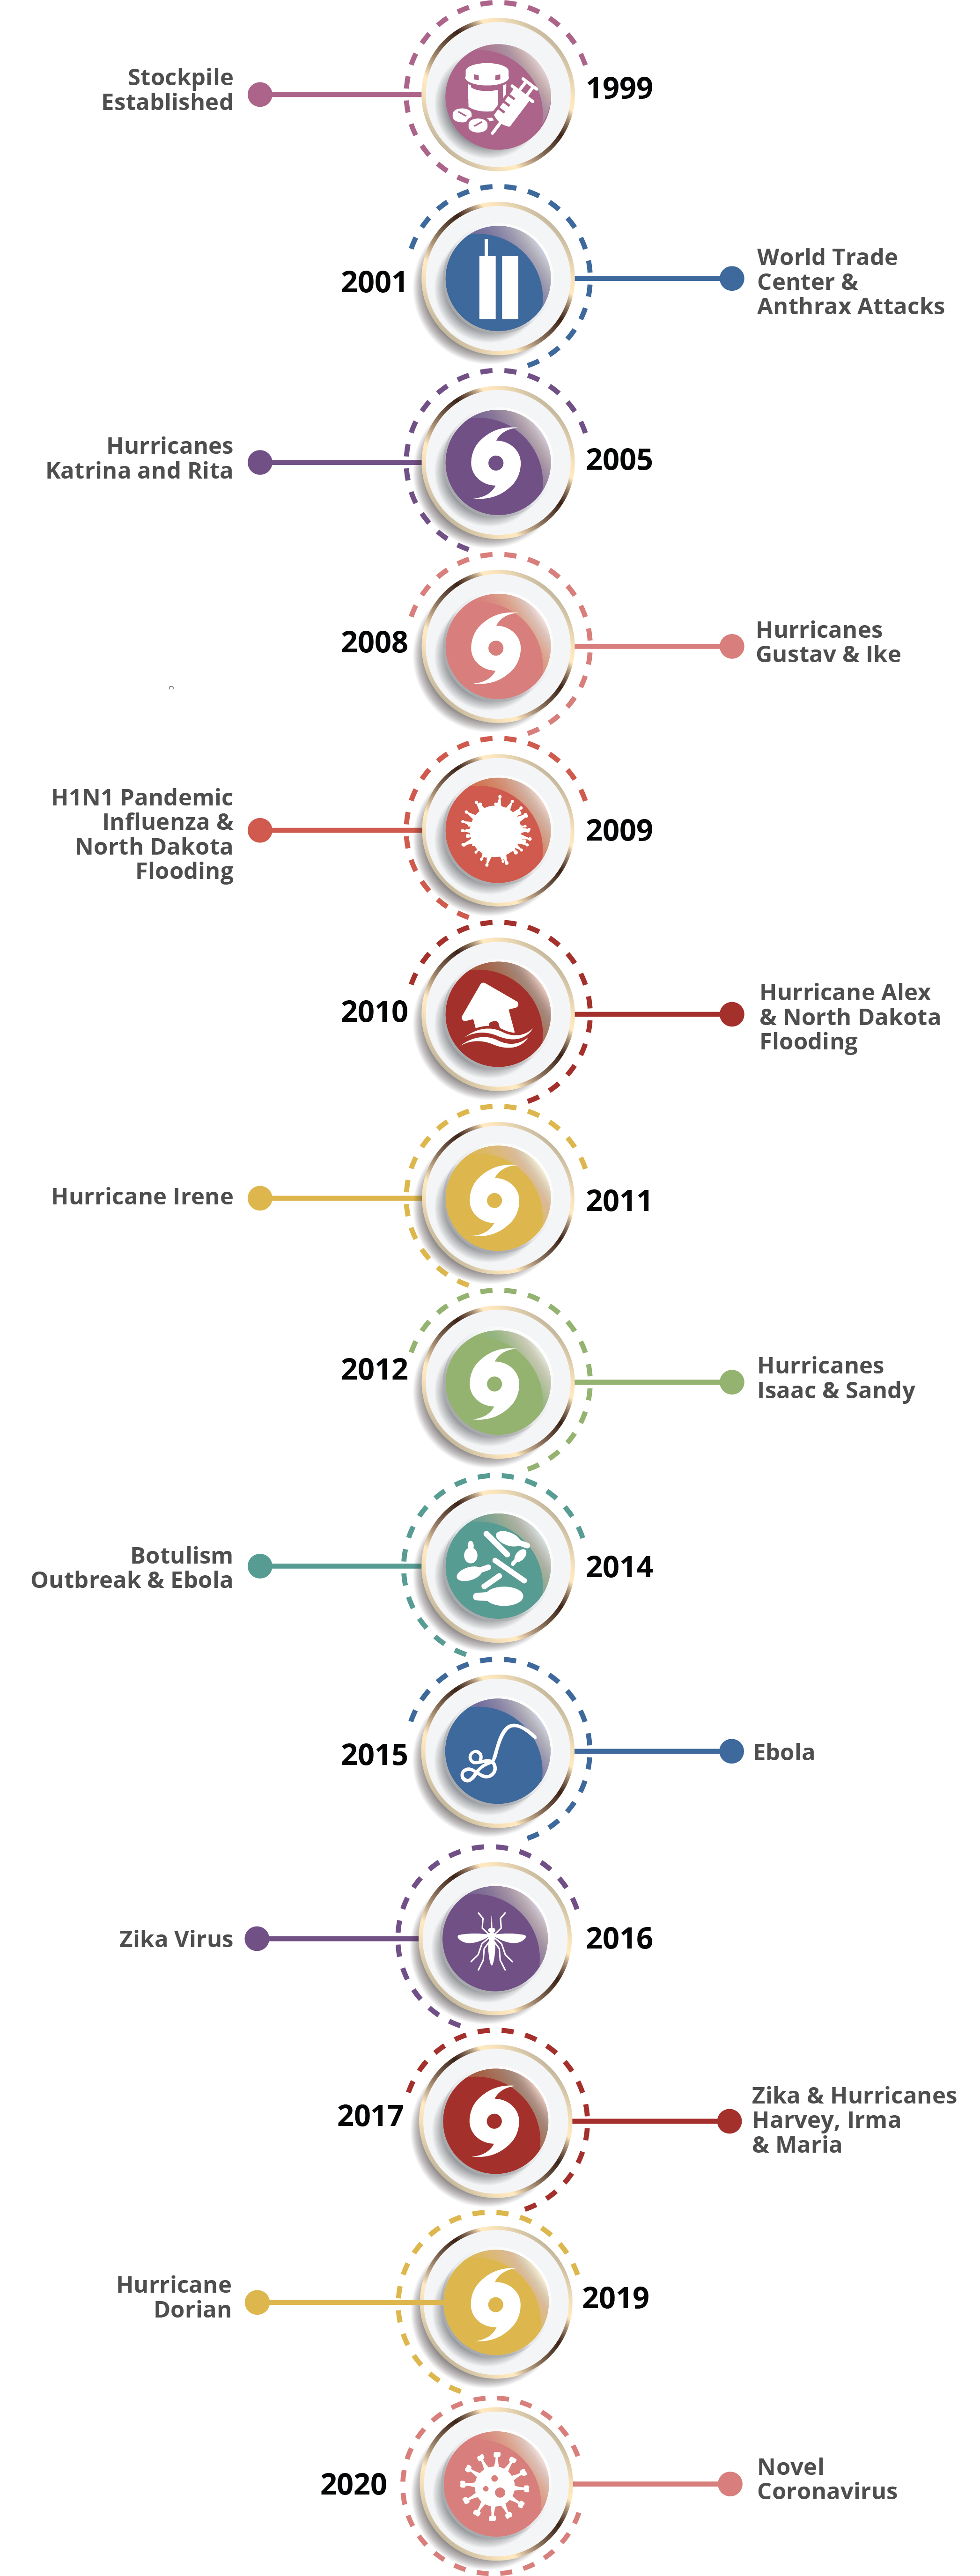 Timeline of CDC stockpile responses.  Contents of this graphic are described in the text below.